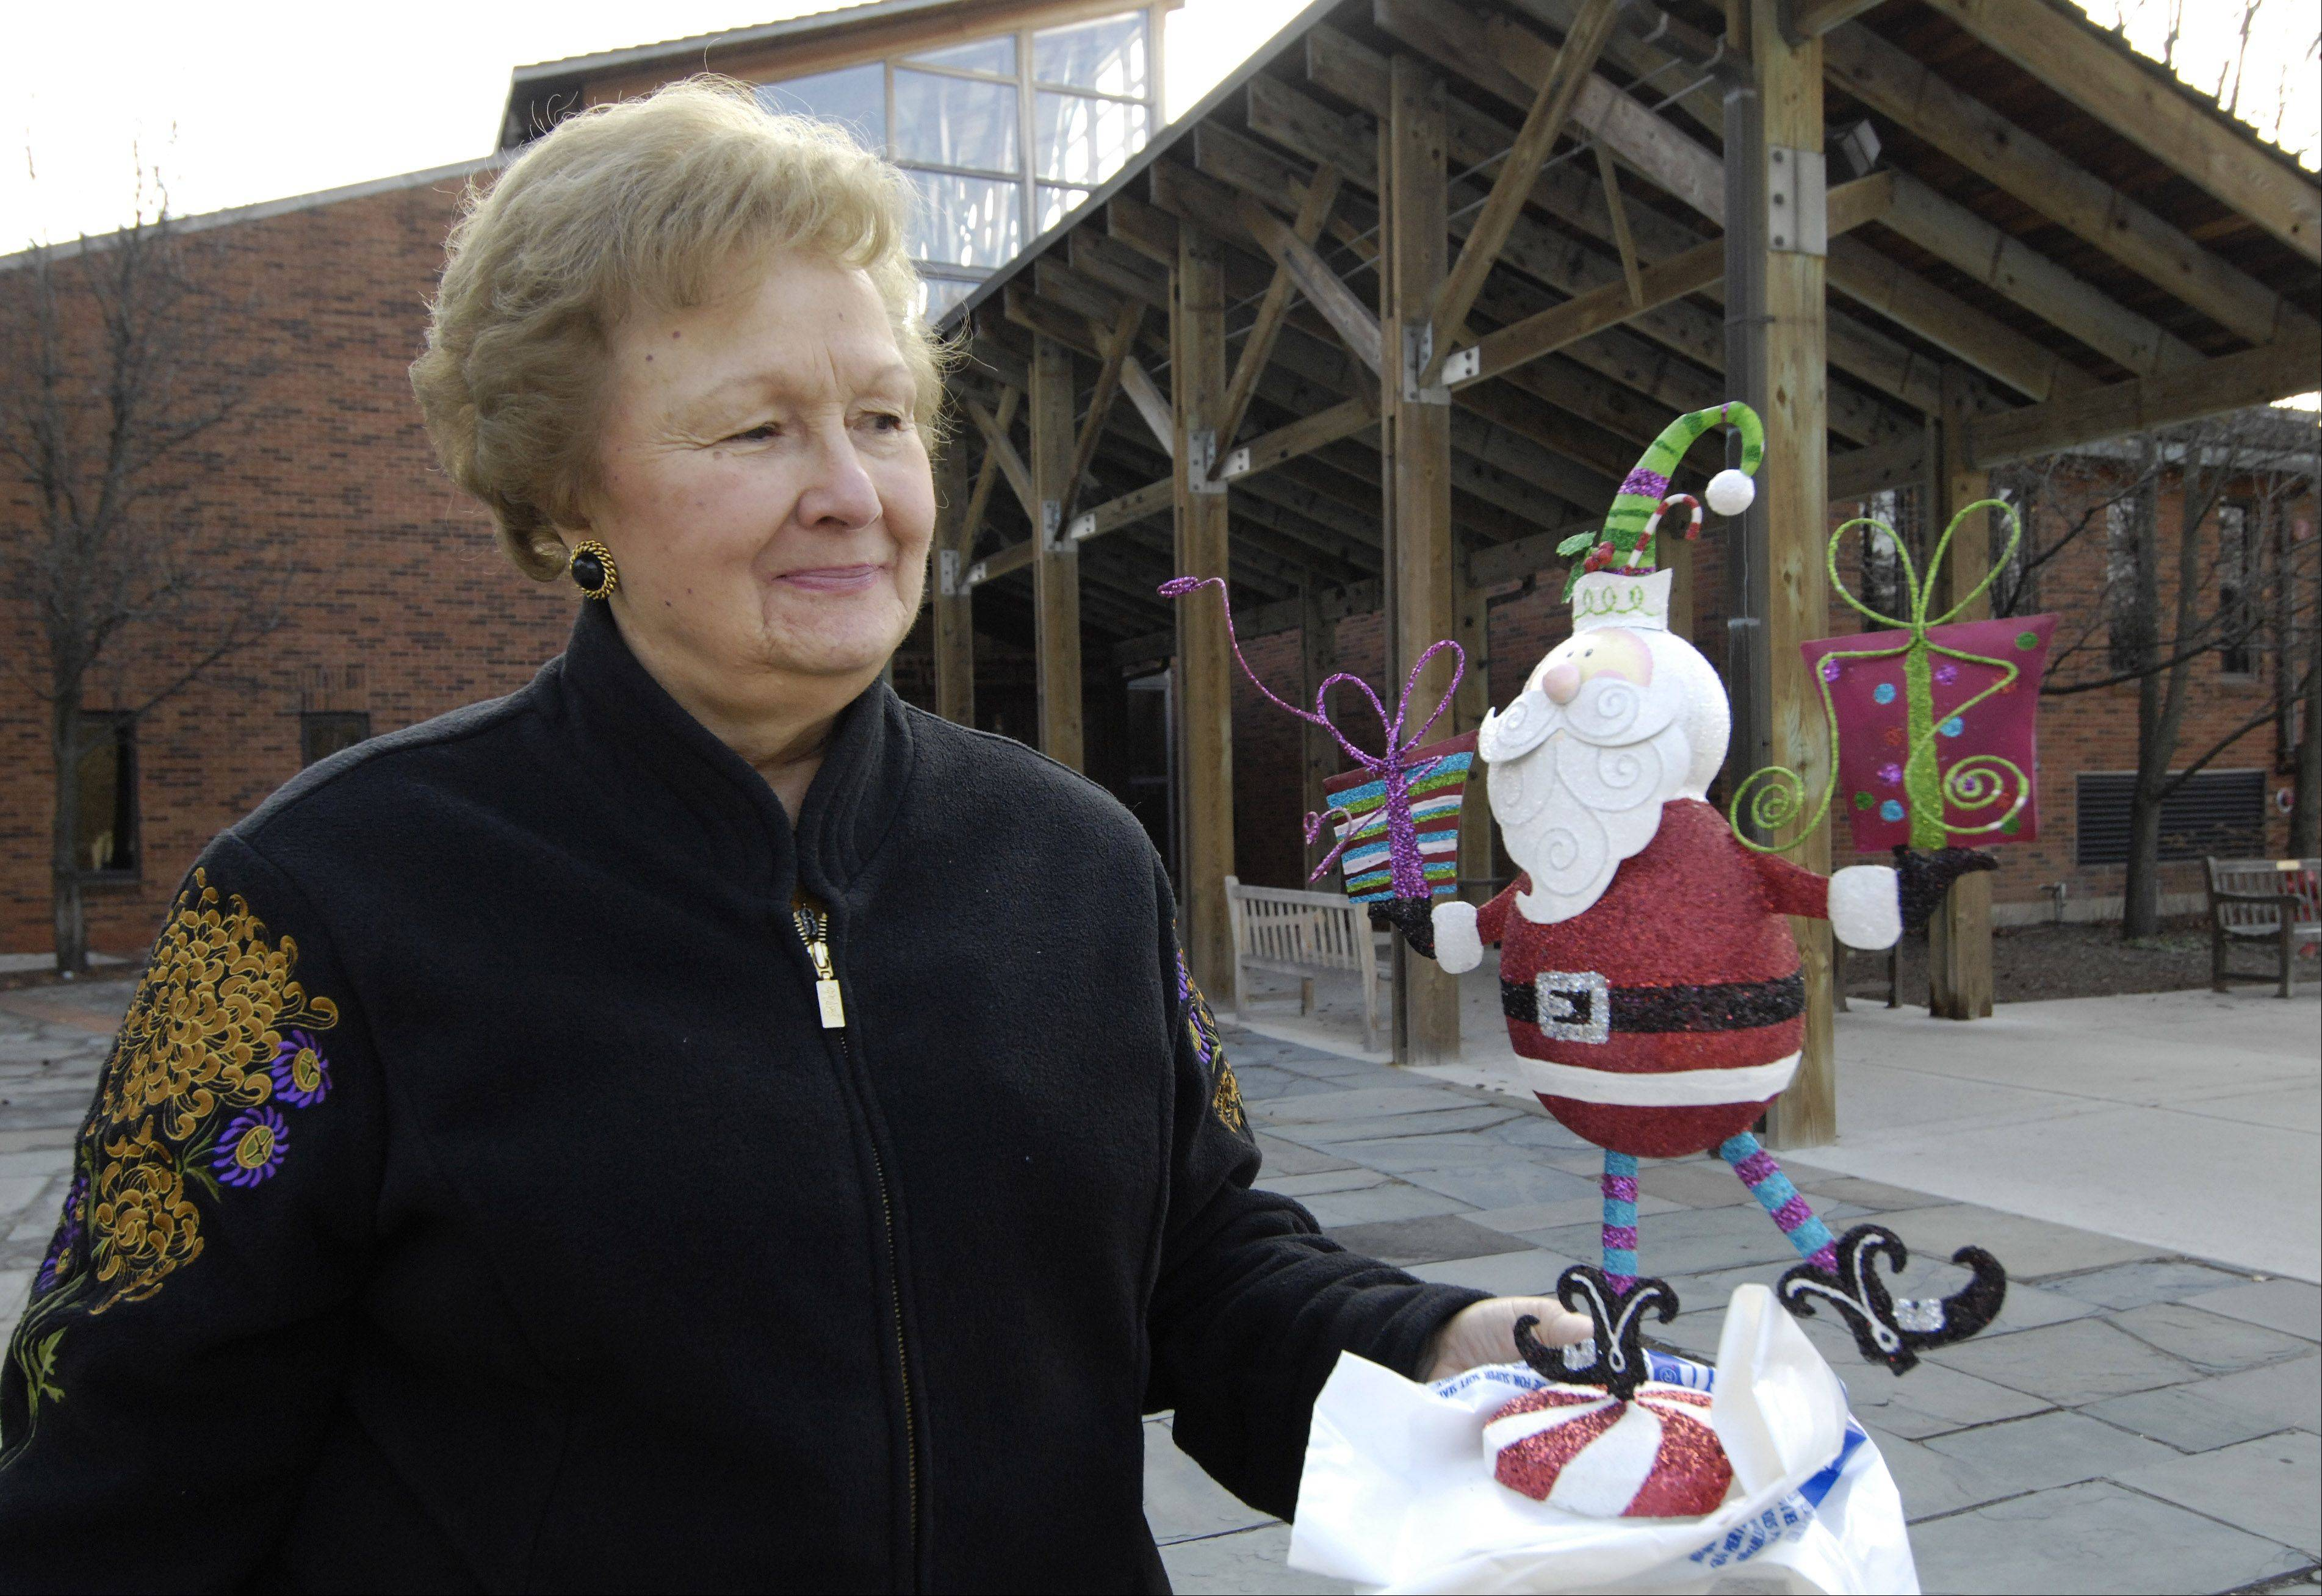 JOE LEWNARD/jlewnard@dailyherald.com Barbara Germain of the Countryside Garden Class of Barrington carries a Santa figure she said the Barrington Area Library rejected last month when she dropped it off for inclusion in a holiday display.